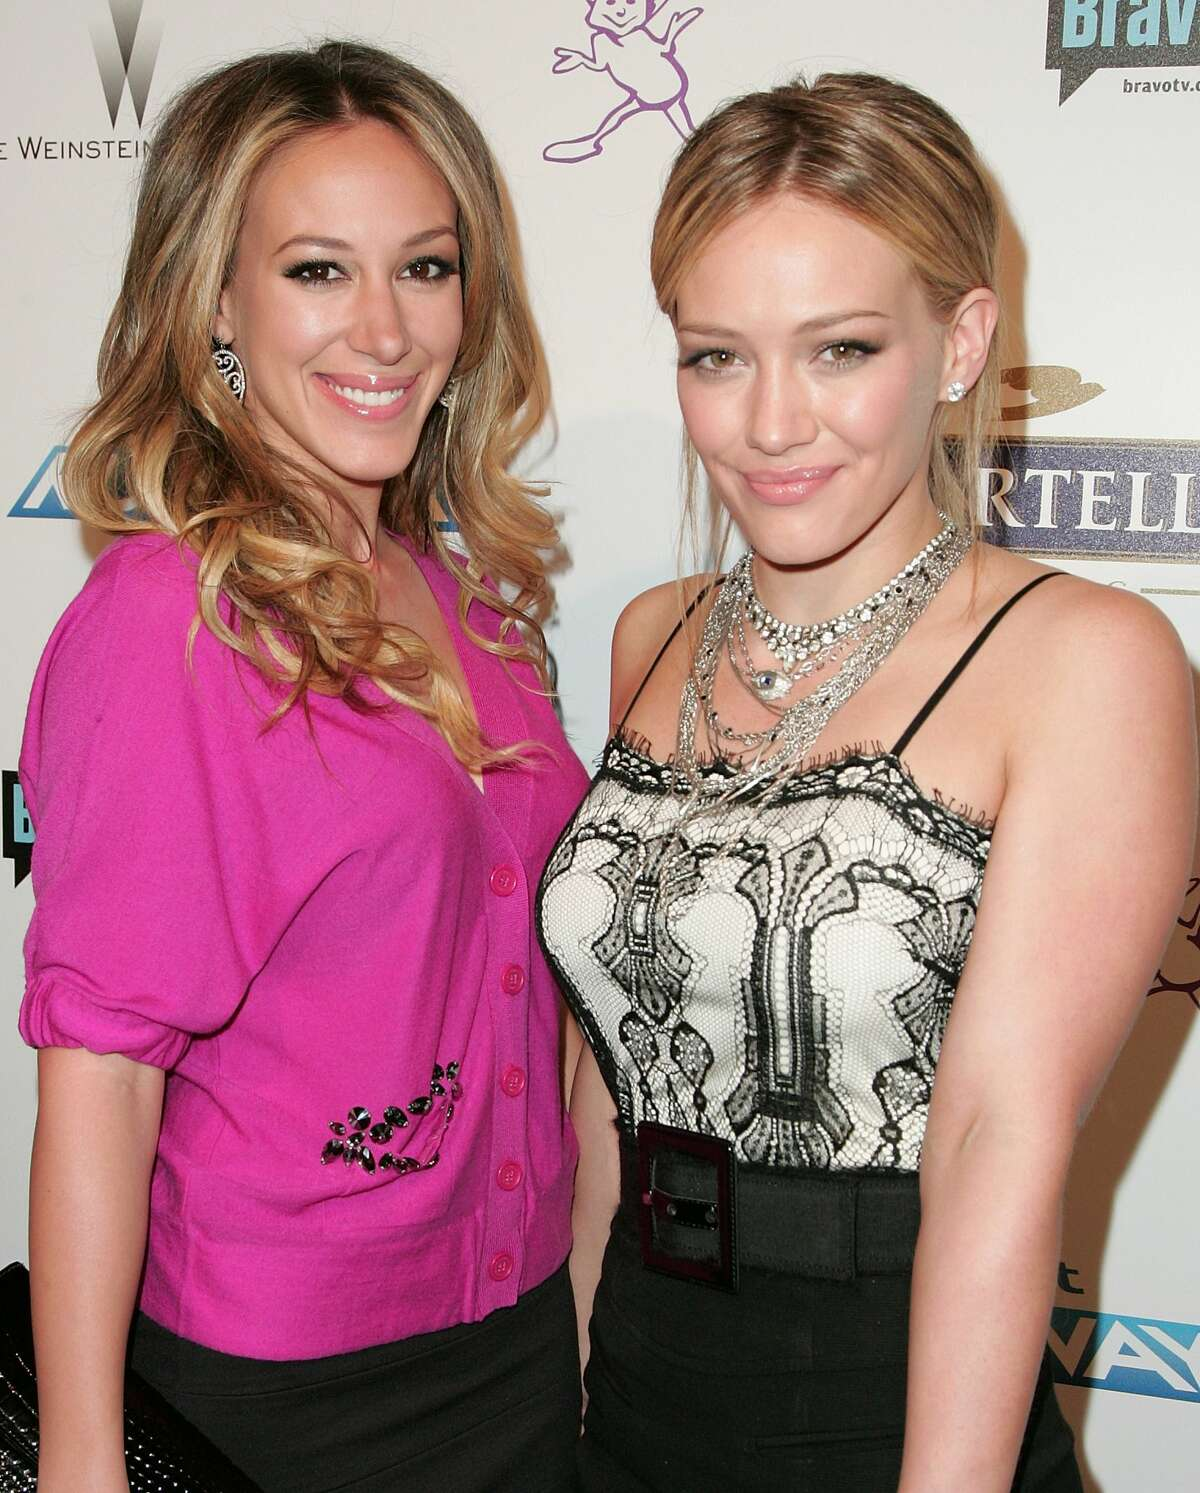 Sisters Hilary and Haylie Duff were born in Houston. They moved to California with their mother to pursue their acting careers, while their father remained in Houston to maintain the family business: a chain of convenience stores.